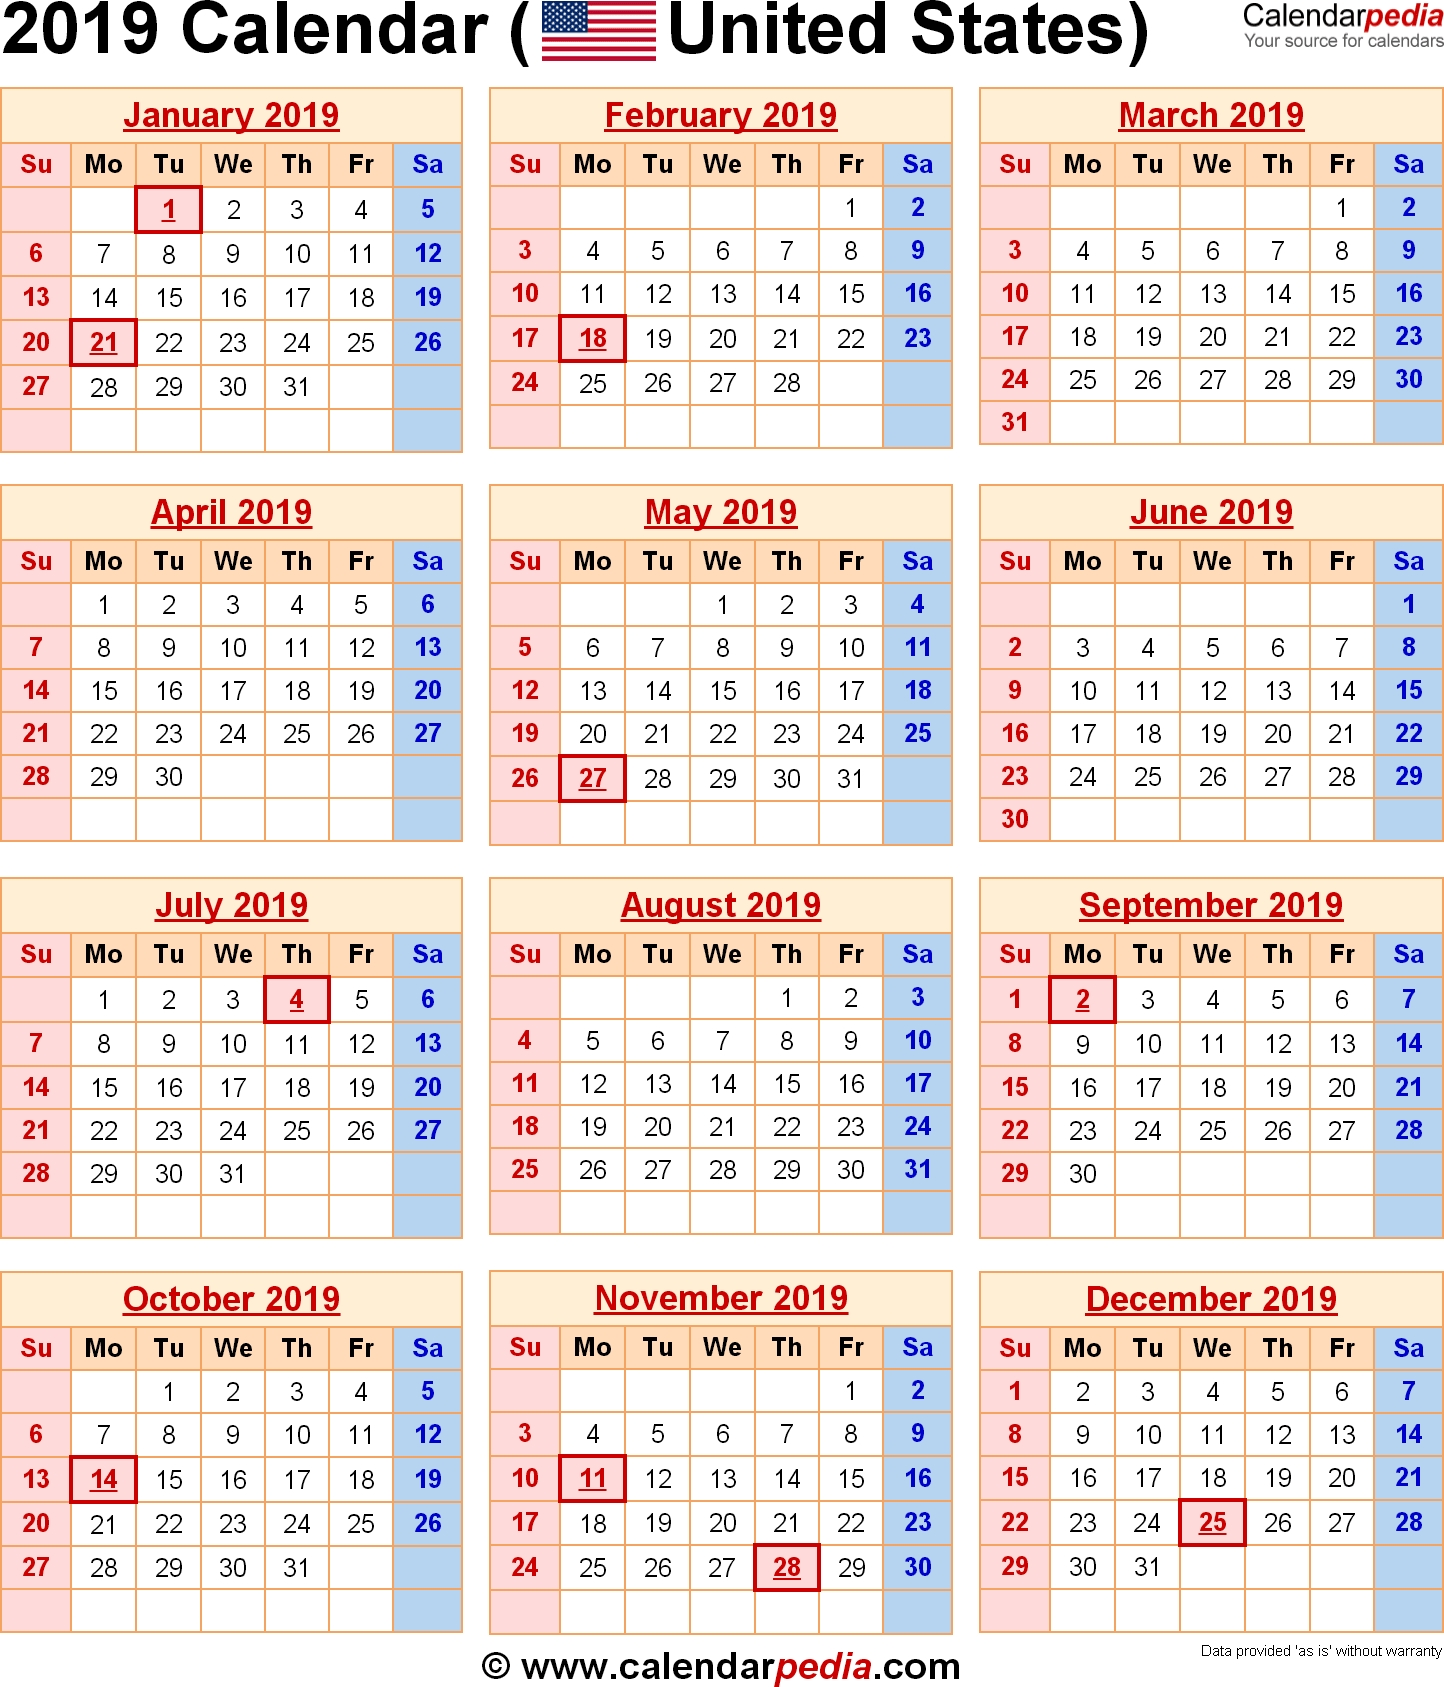 2019 Calendar United States | Us Federal Holidays | 2019 Calendar Us Calendar 2019 Usa